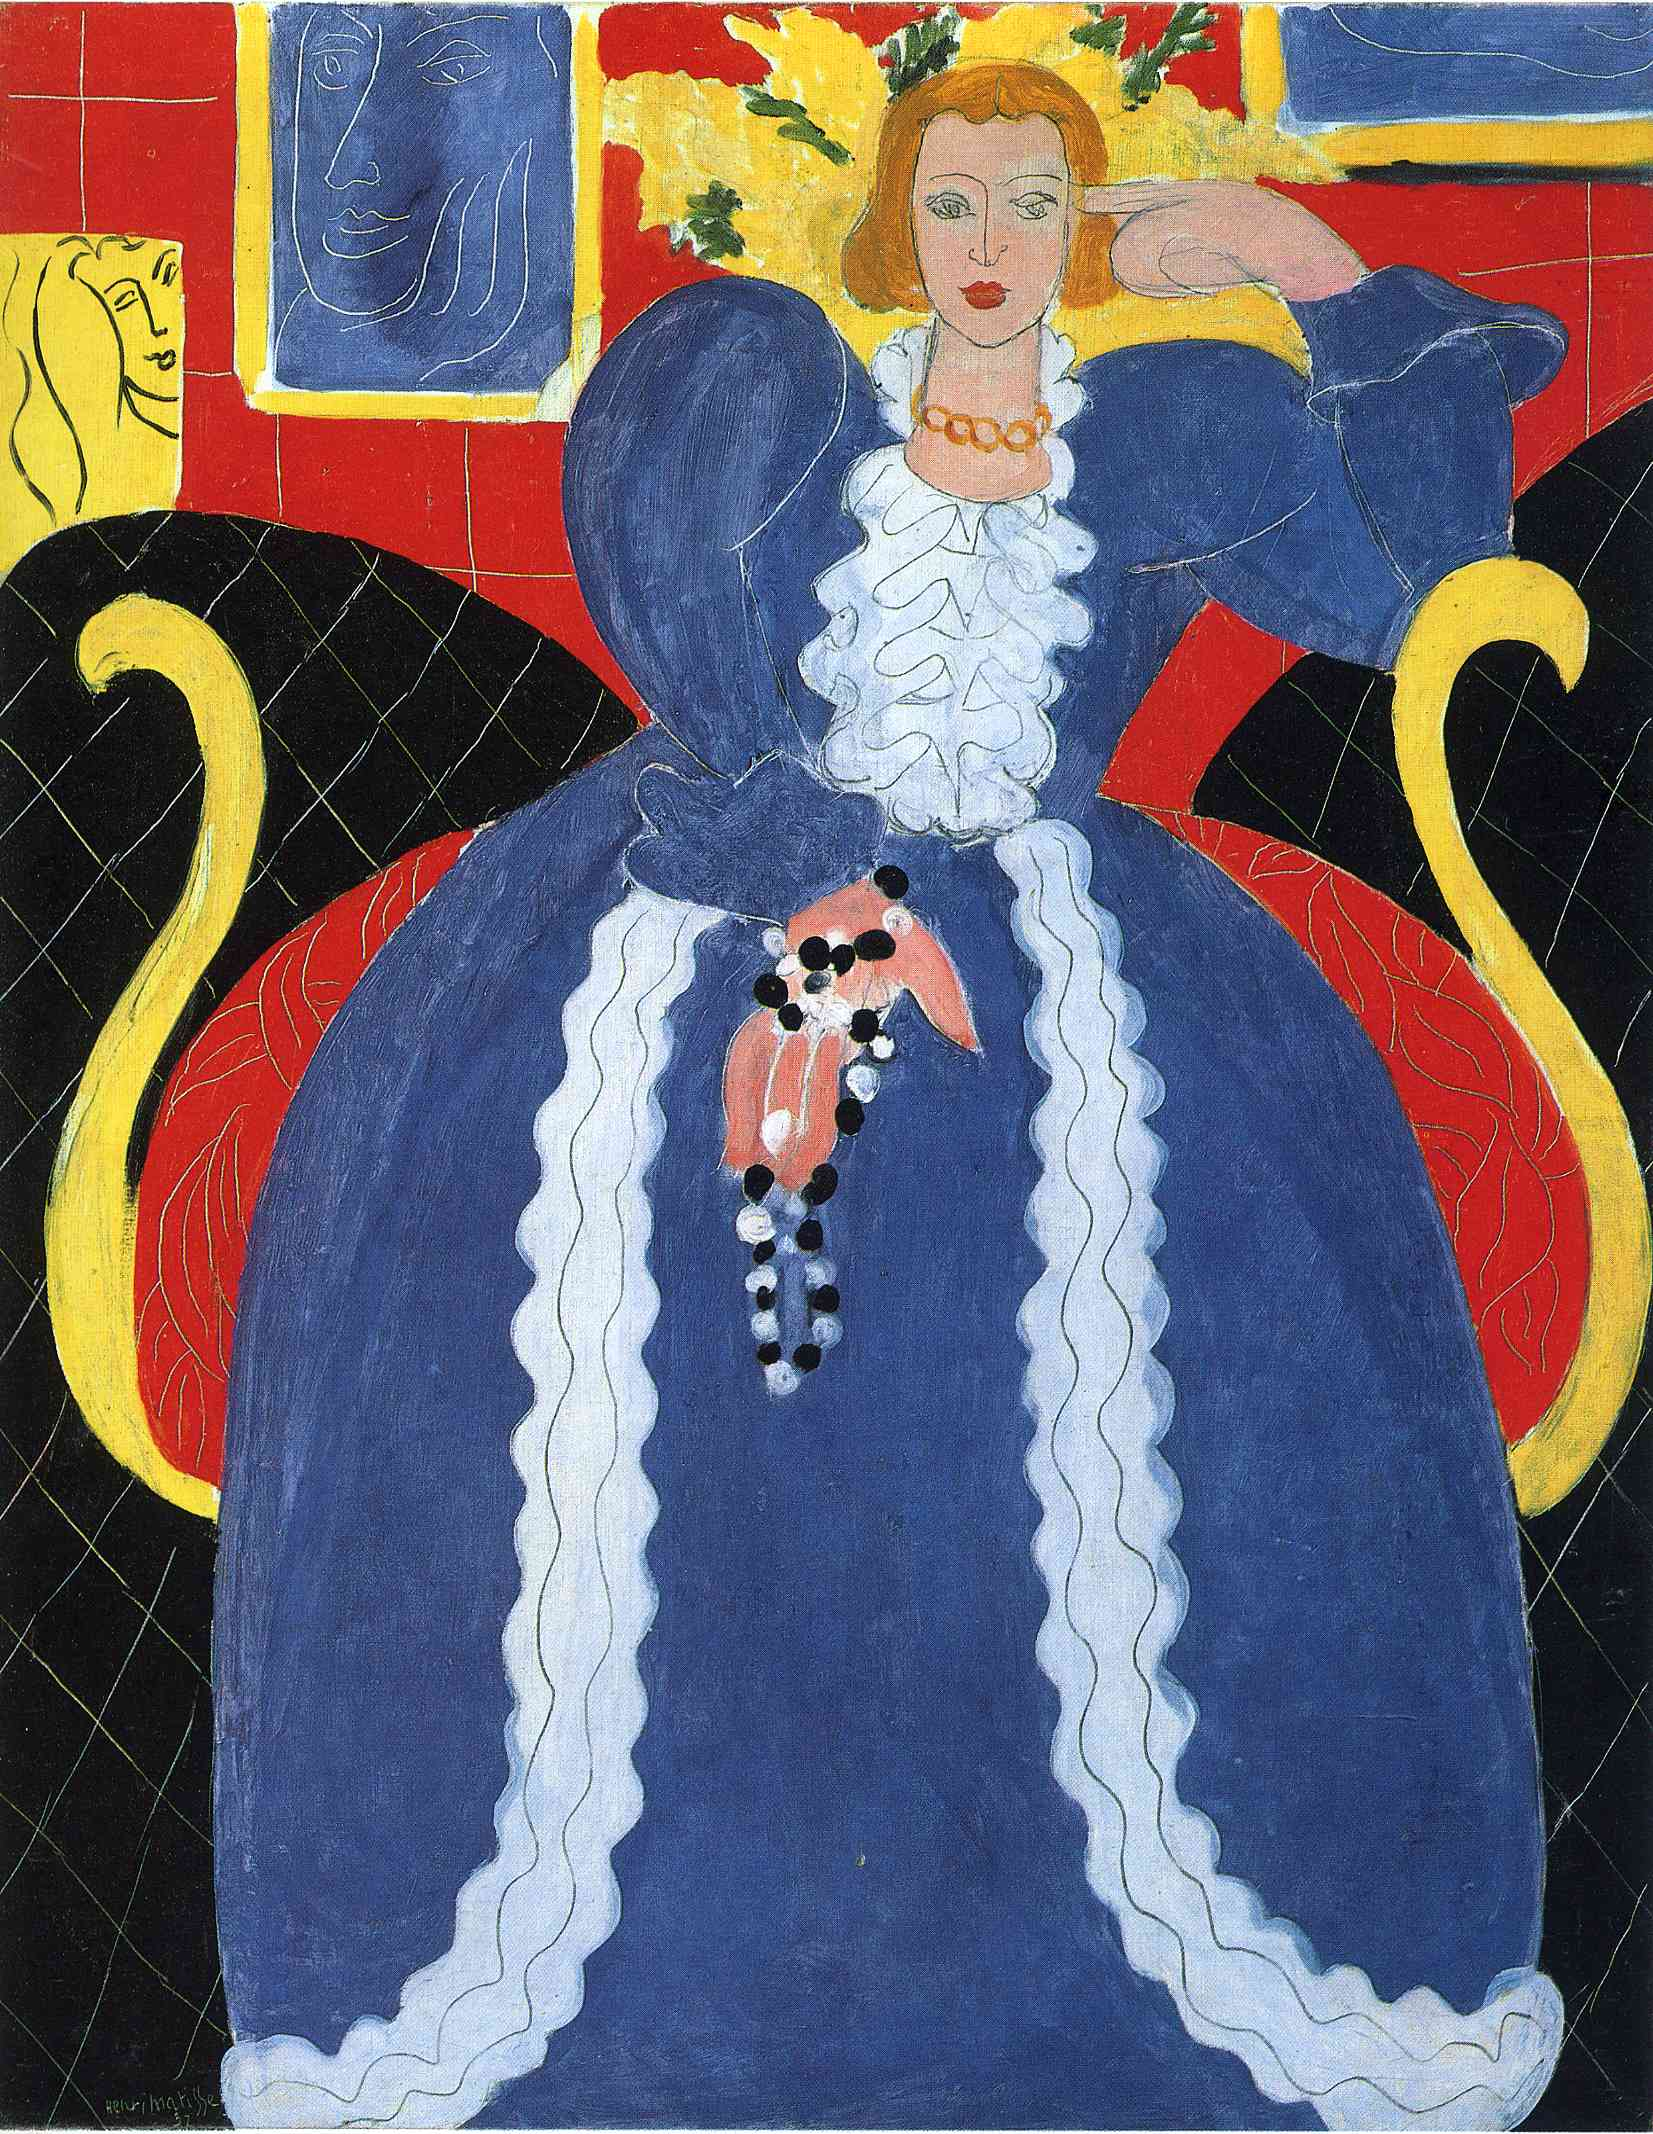 Henri Matisse - Woman in Blue, or The Large Blue Robe and Mimosas 1937